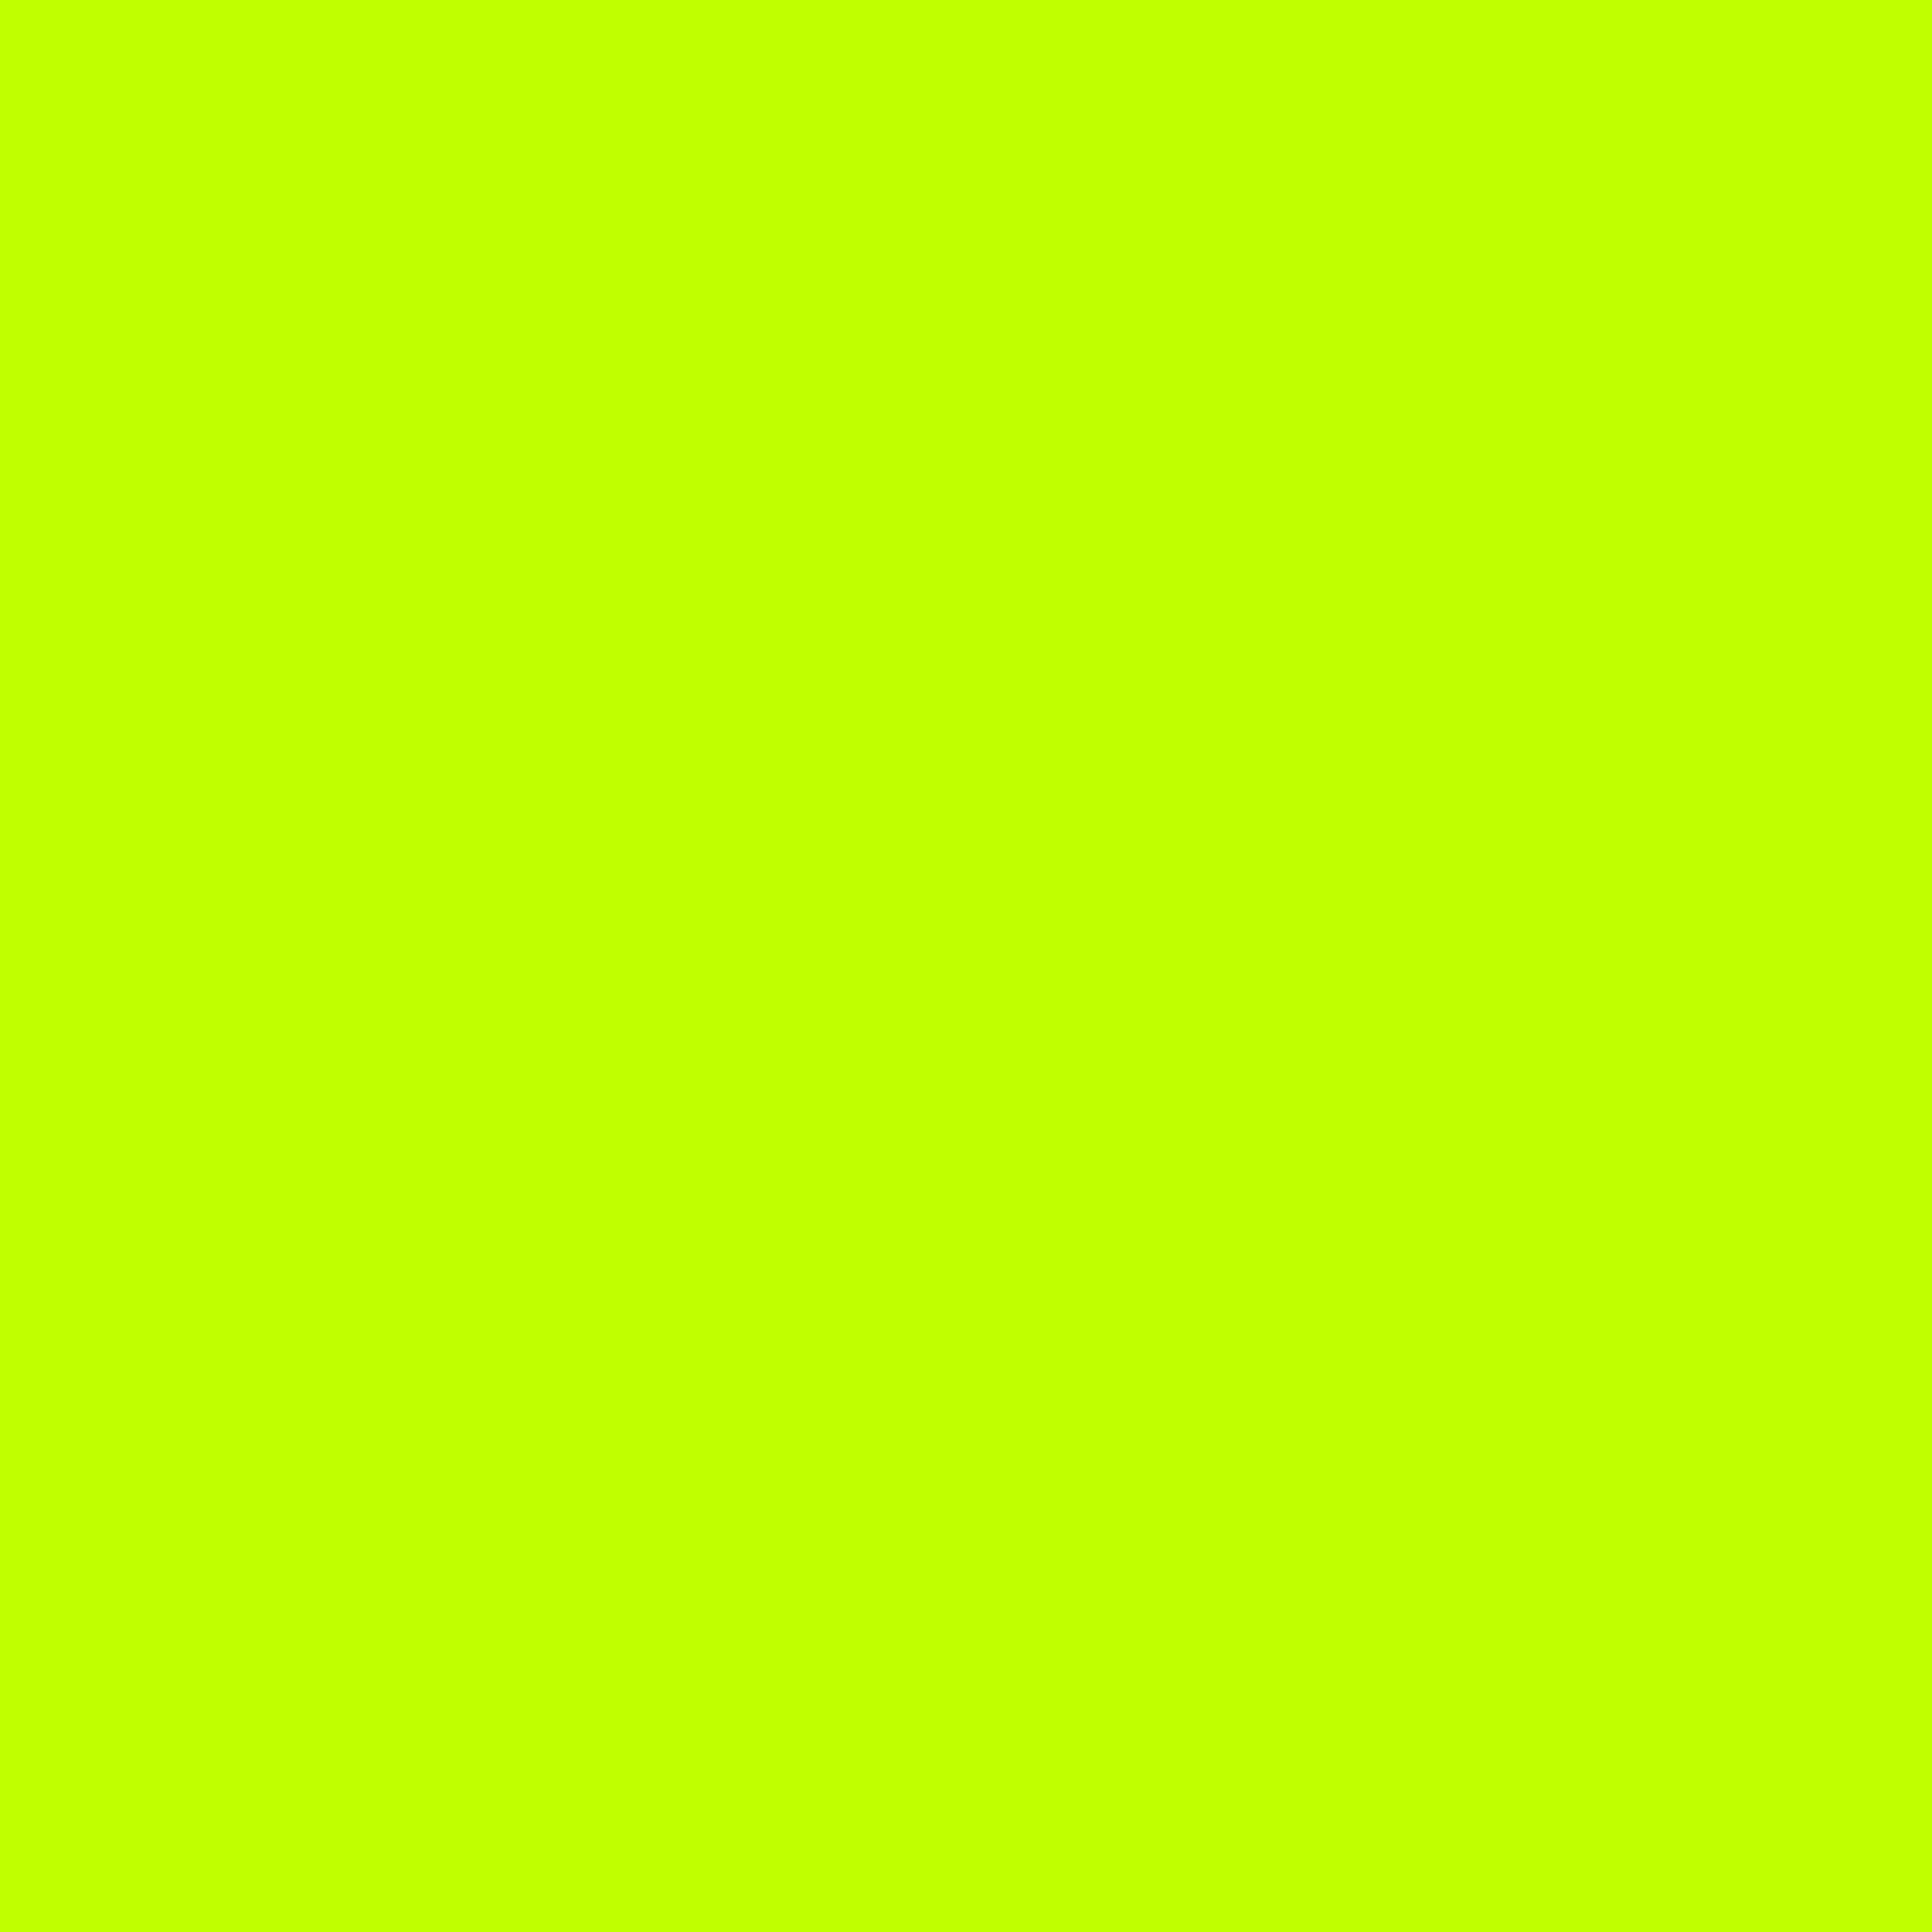 lime color background - photo #40